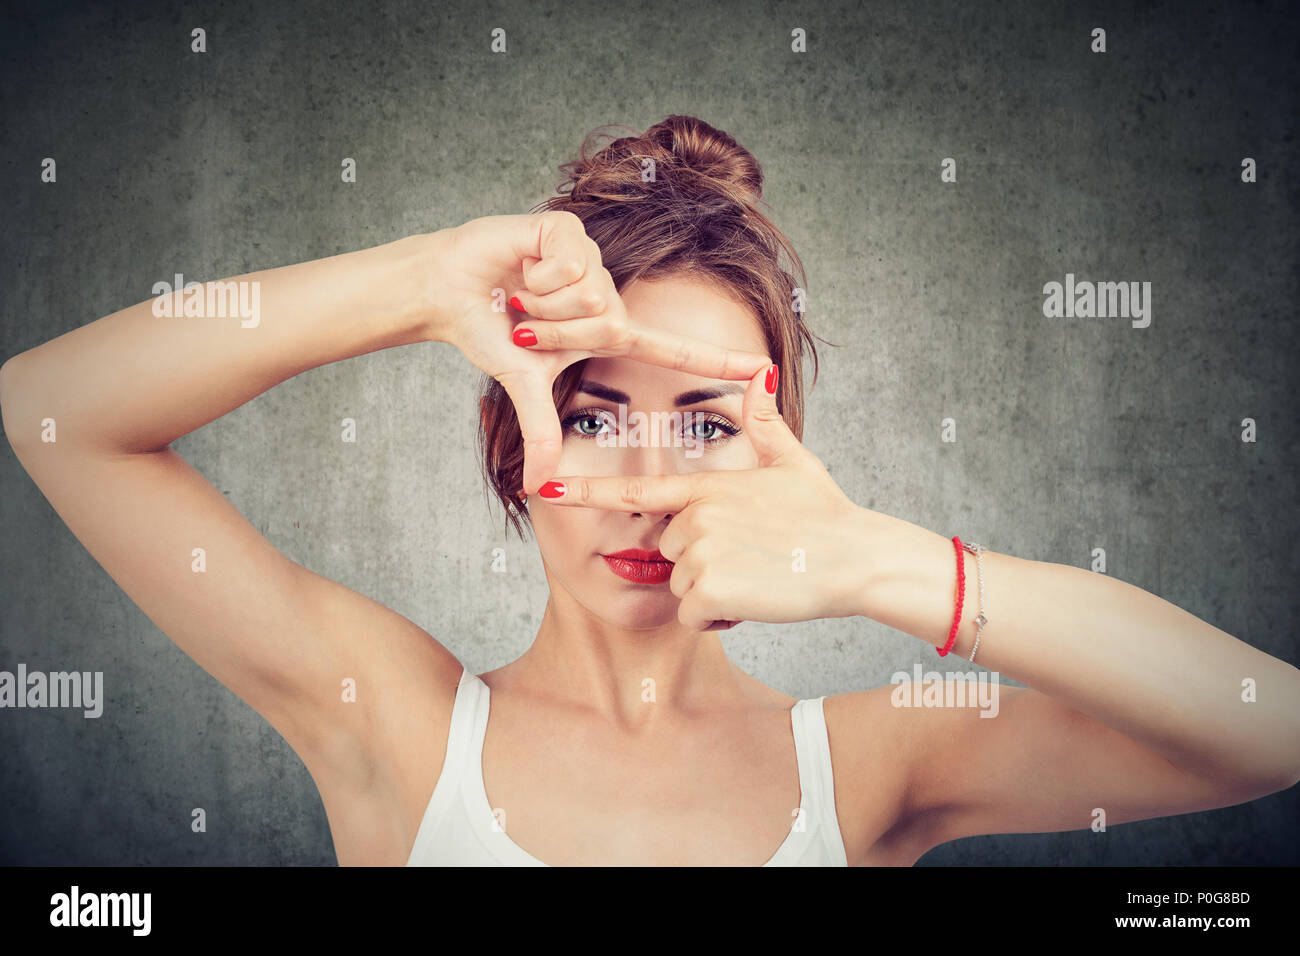 Young girl making frame with fingers and looking through limits at camera on gray background - Stock Image